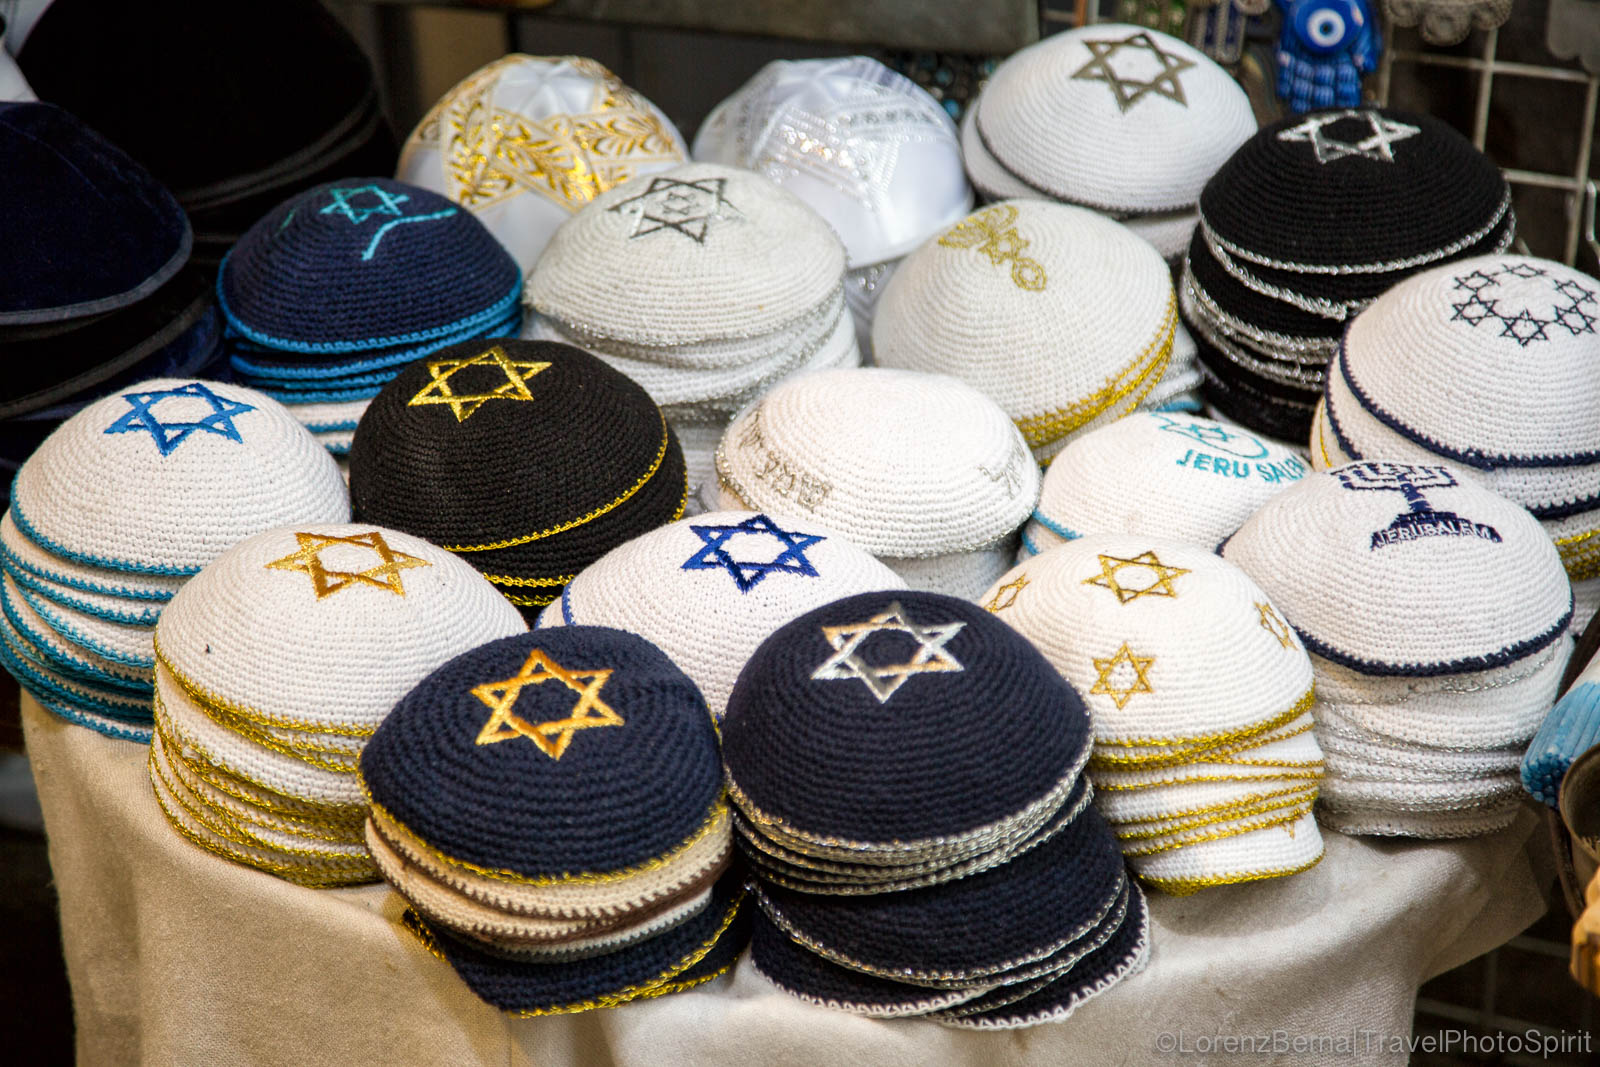 The Kippah, worn by the Jewish men when going to pray.